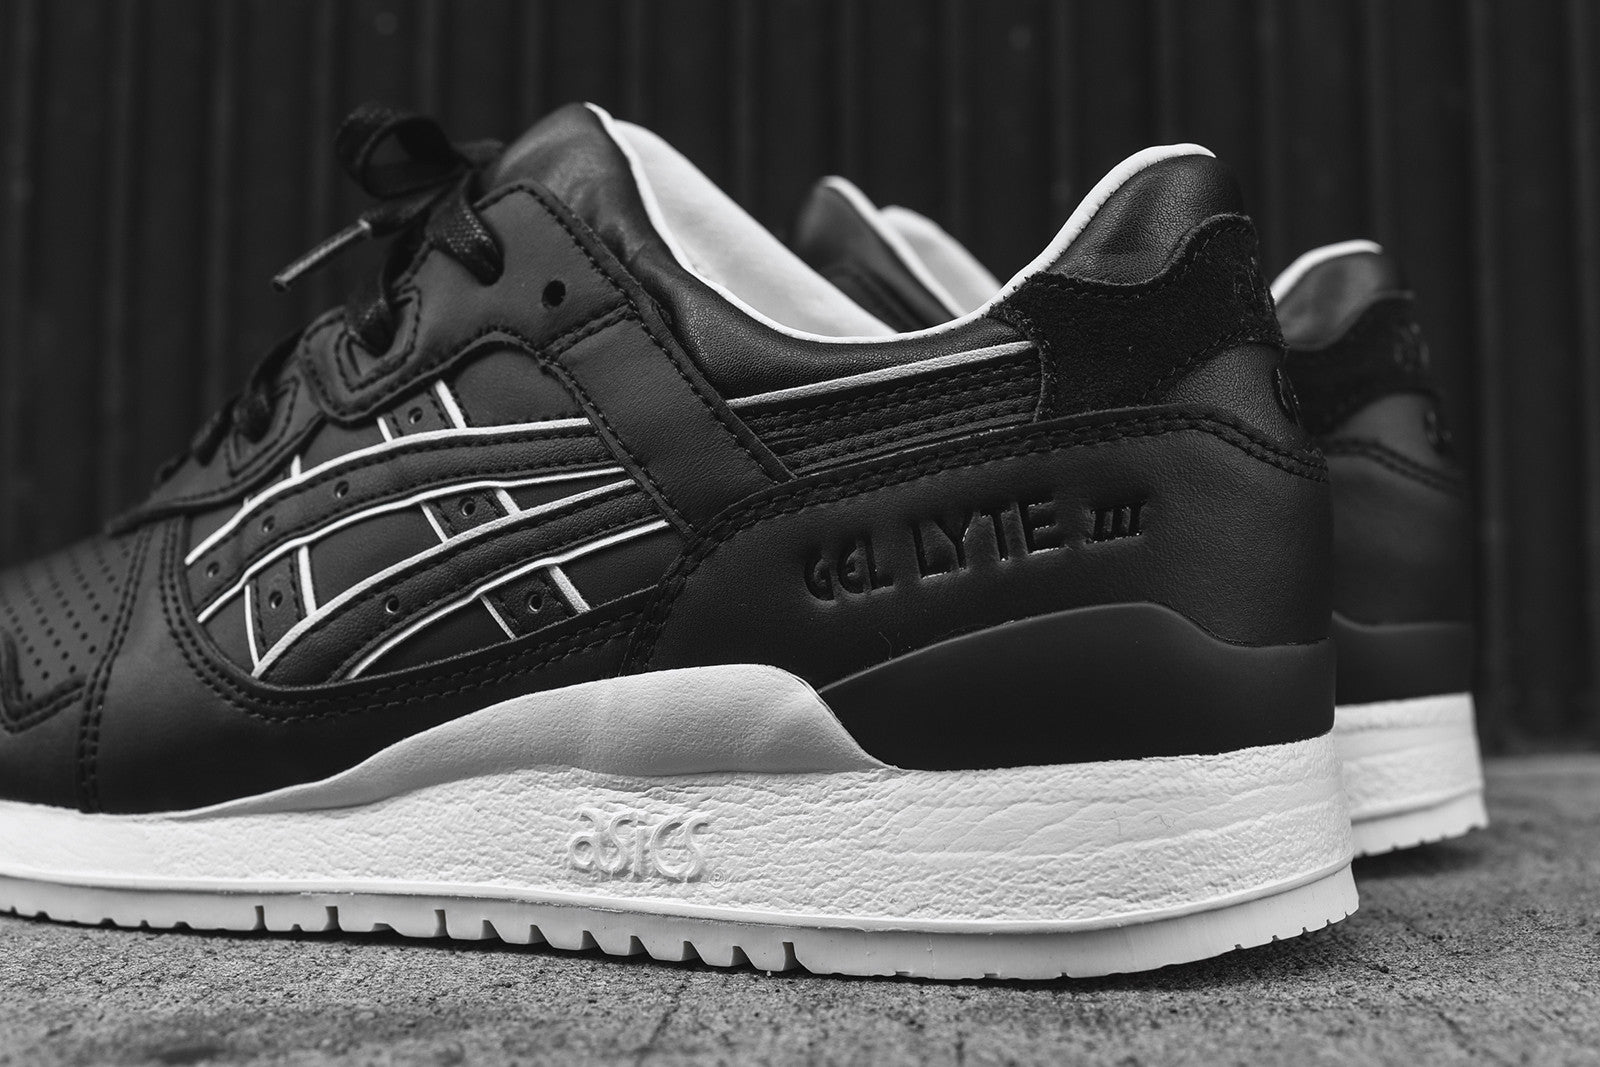 Asics Gel Lyte III - Black / Off White